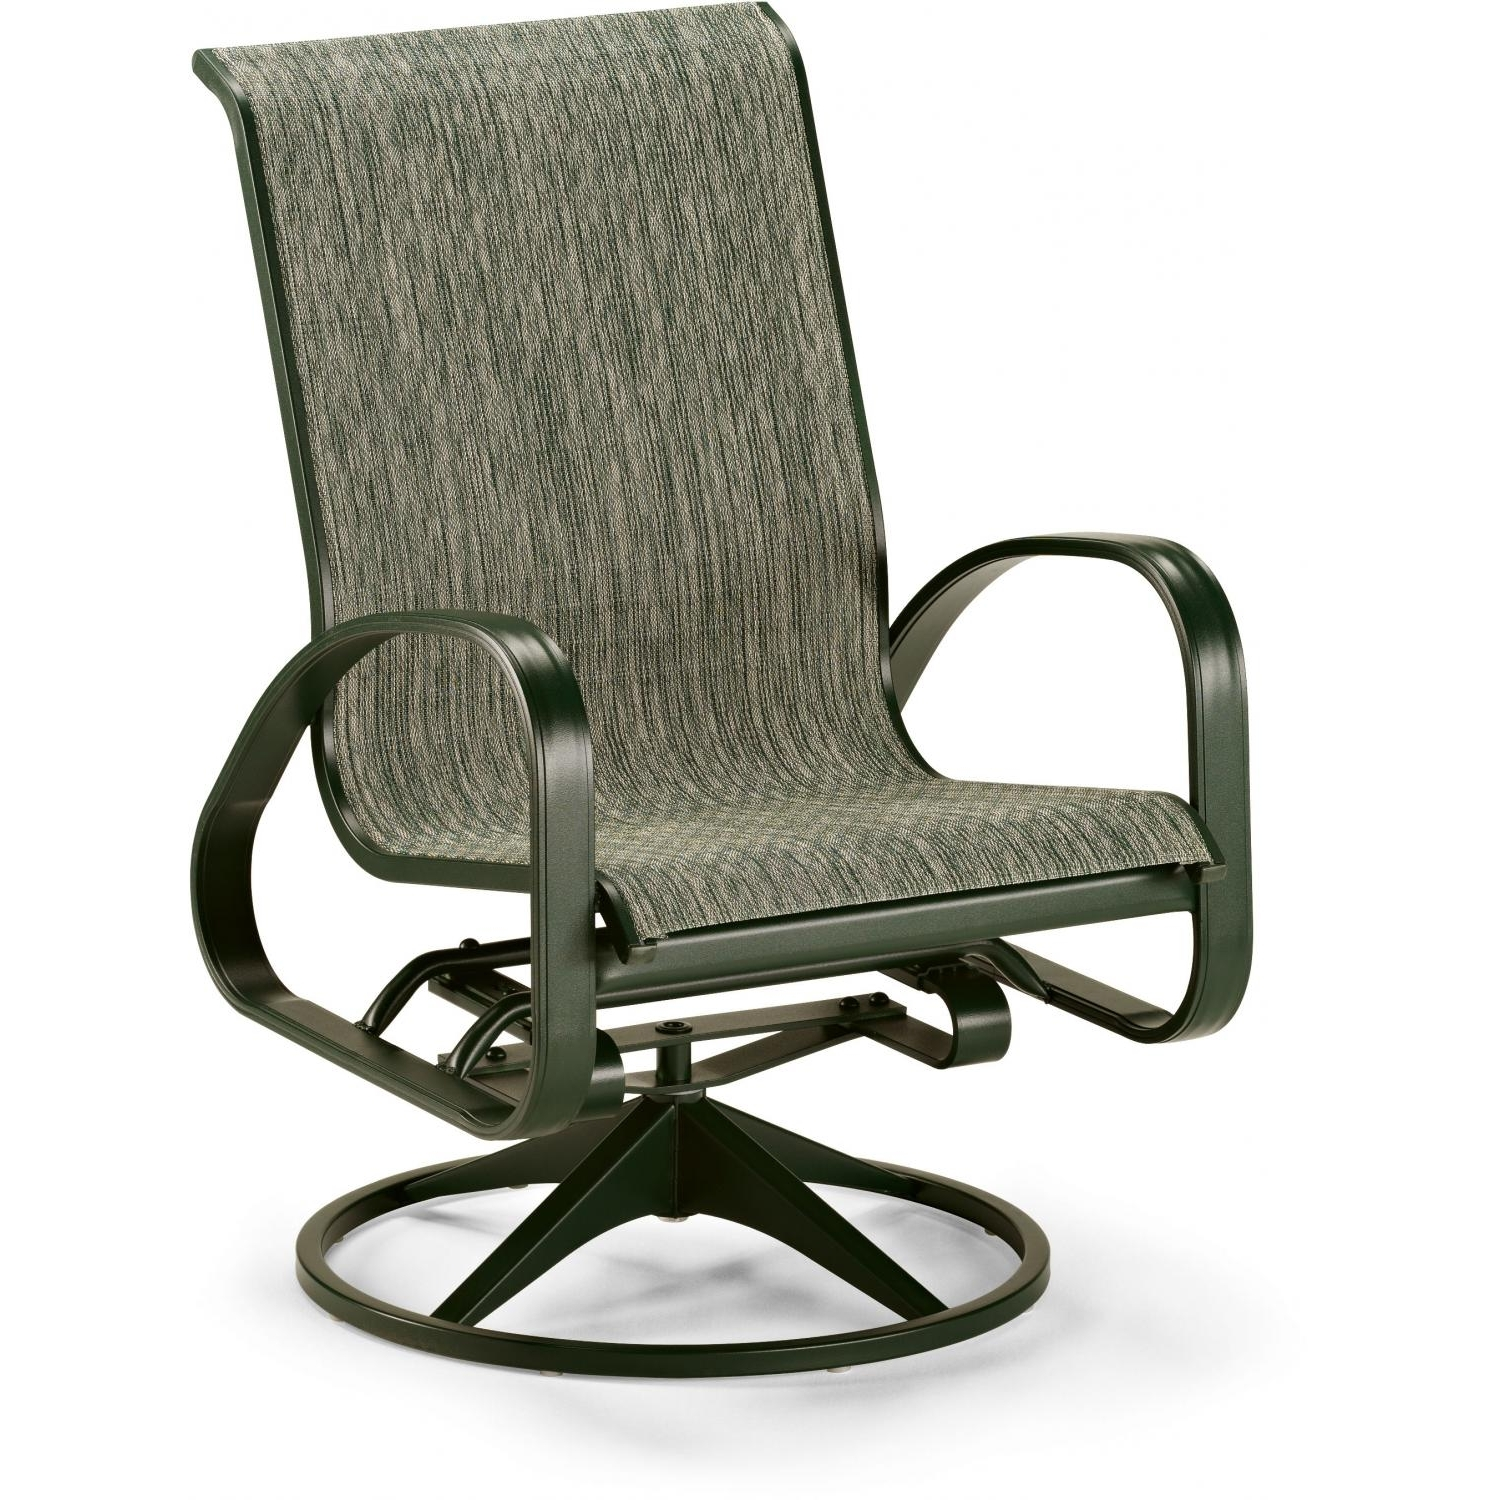 Patio Rocking Chairs With Covers With Regard To Most Up To Date Phenomenal Patio Swivel Rocker Chairs Table Furniture Chair Outdoor (View 17 of 20)